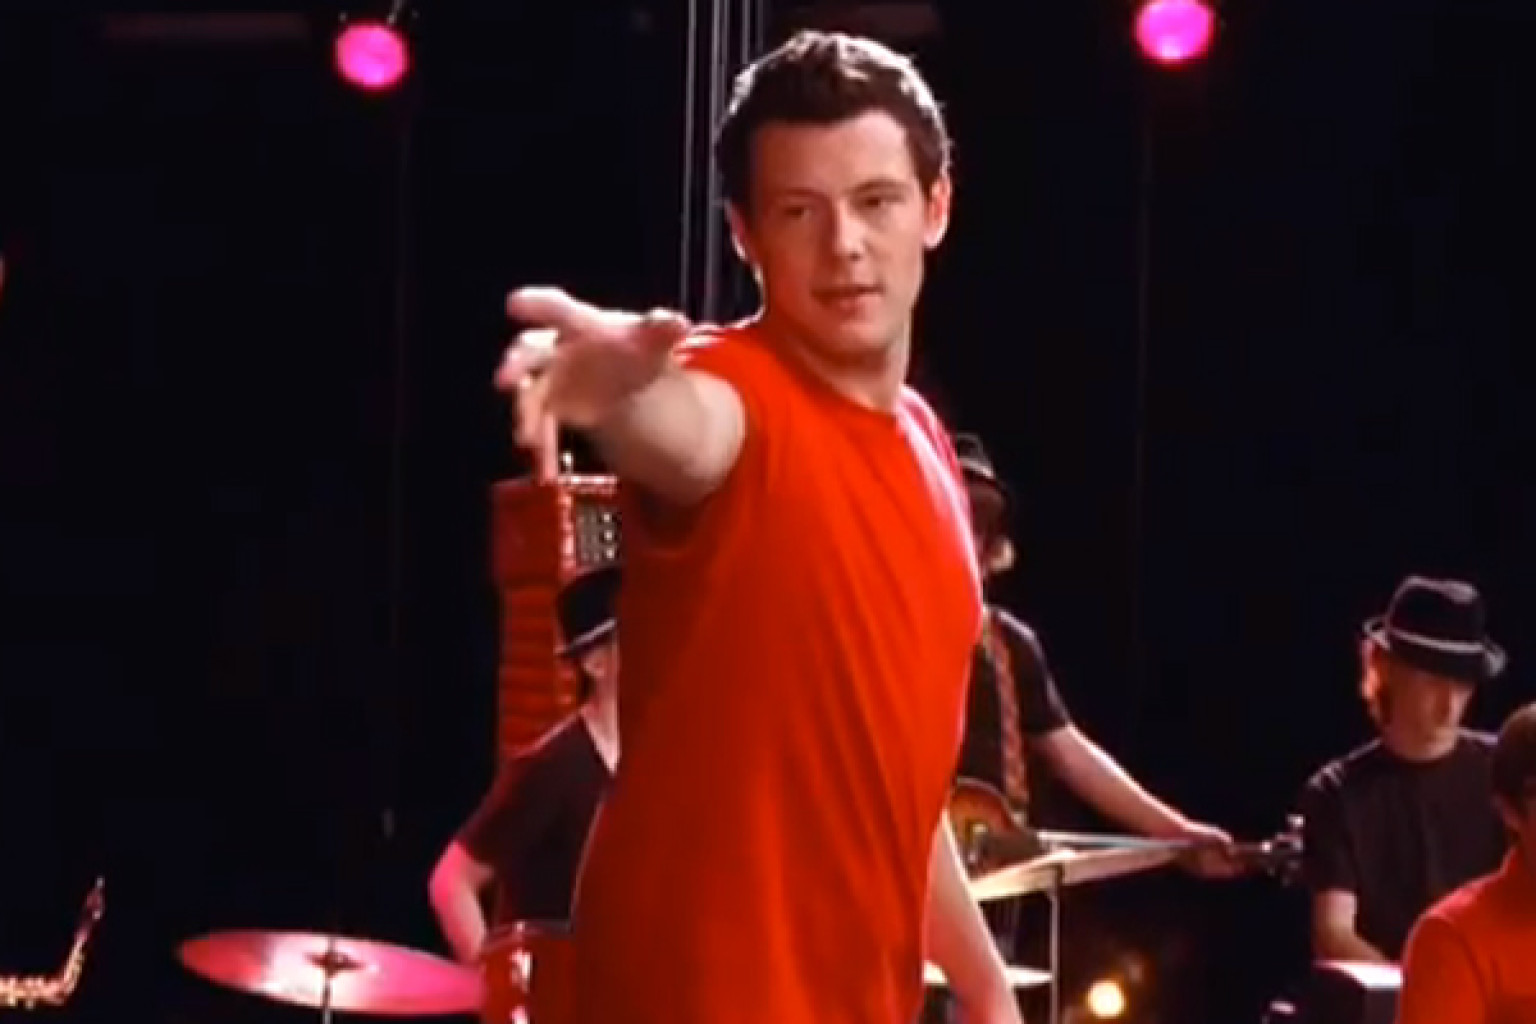 CORY MONTEITH TOP 5 BEST